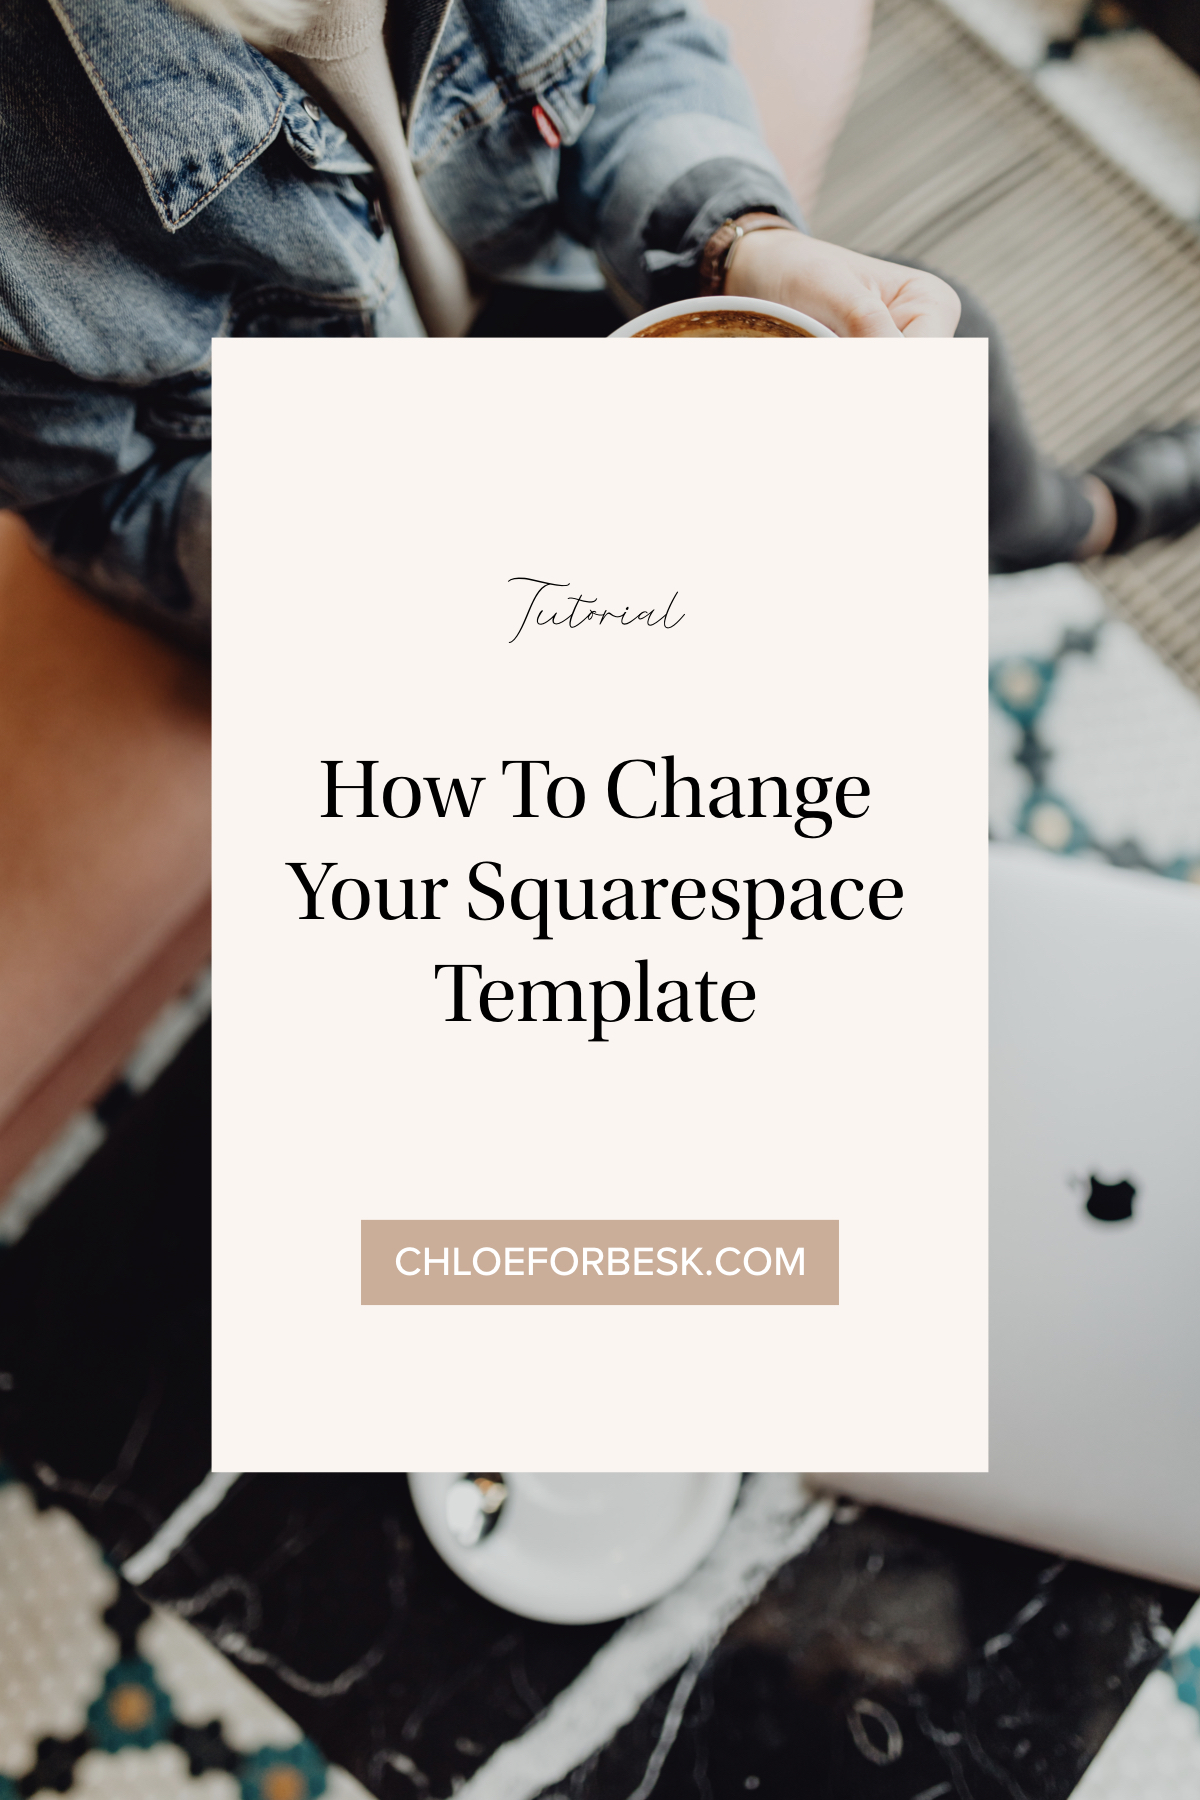 How To Change Your Squarespace Template.001.jpeg